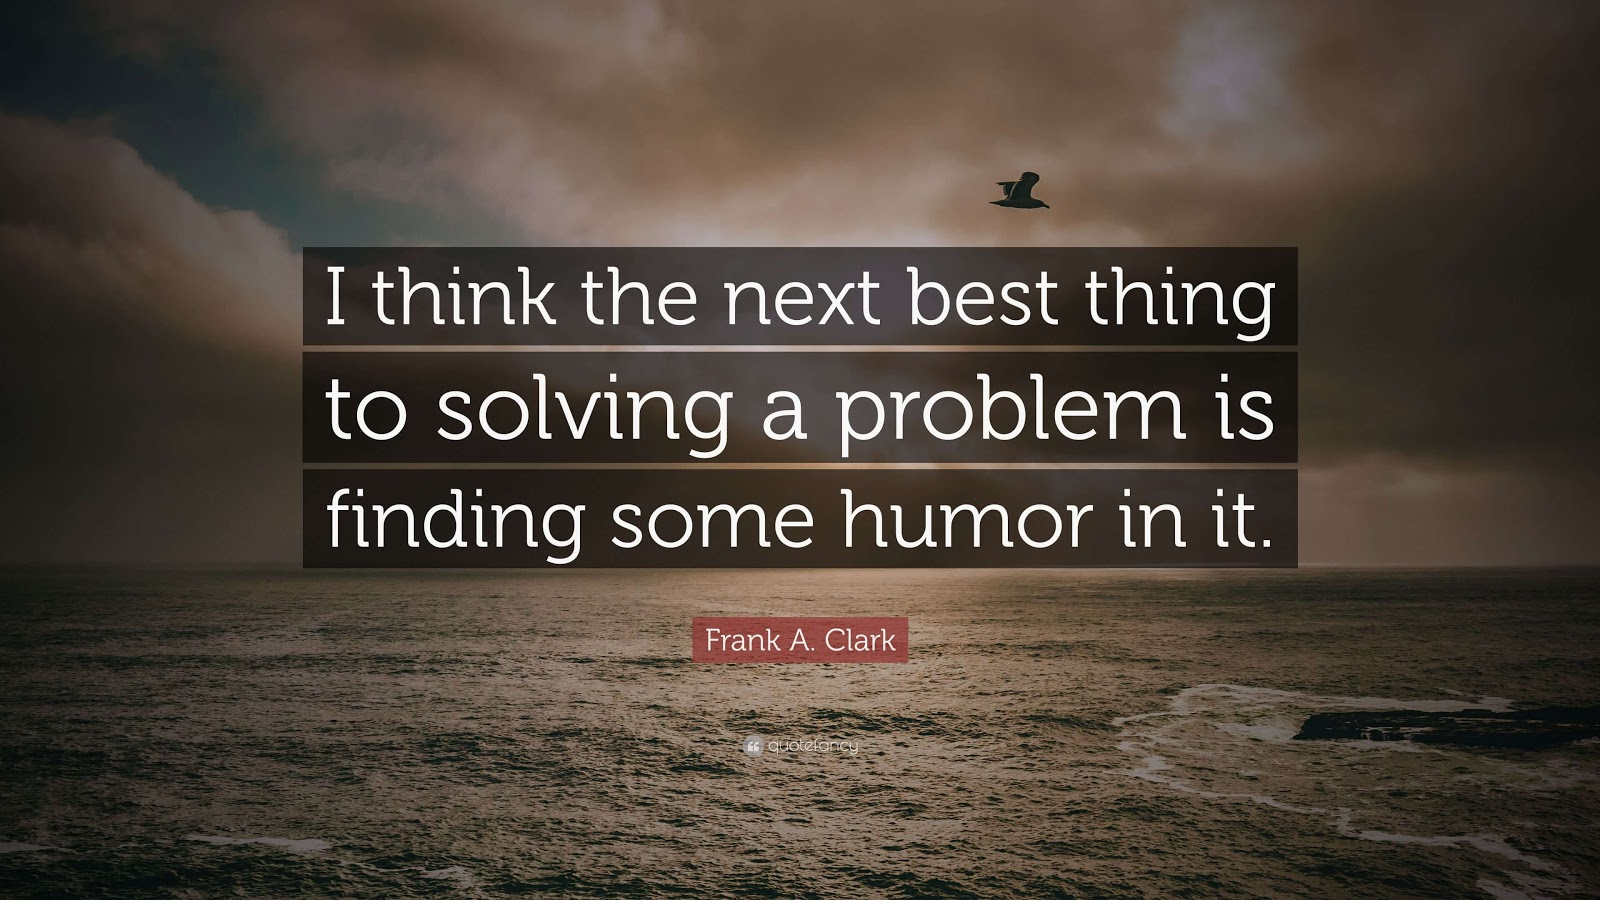 I think the next best thing to solving a problem is finding some humor in it.